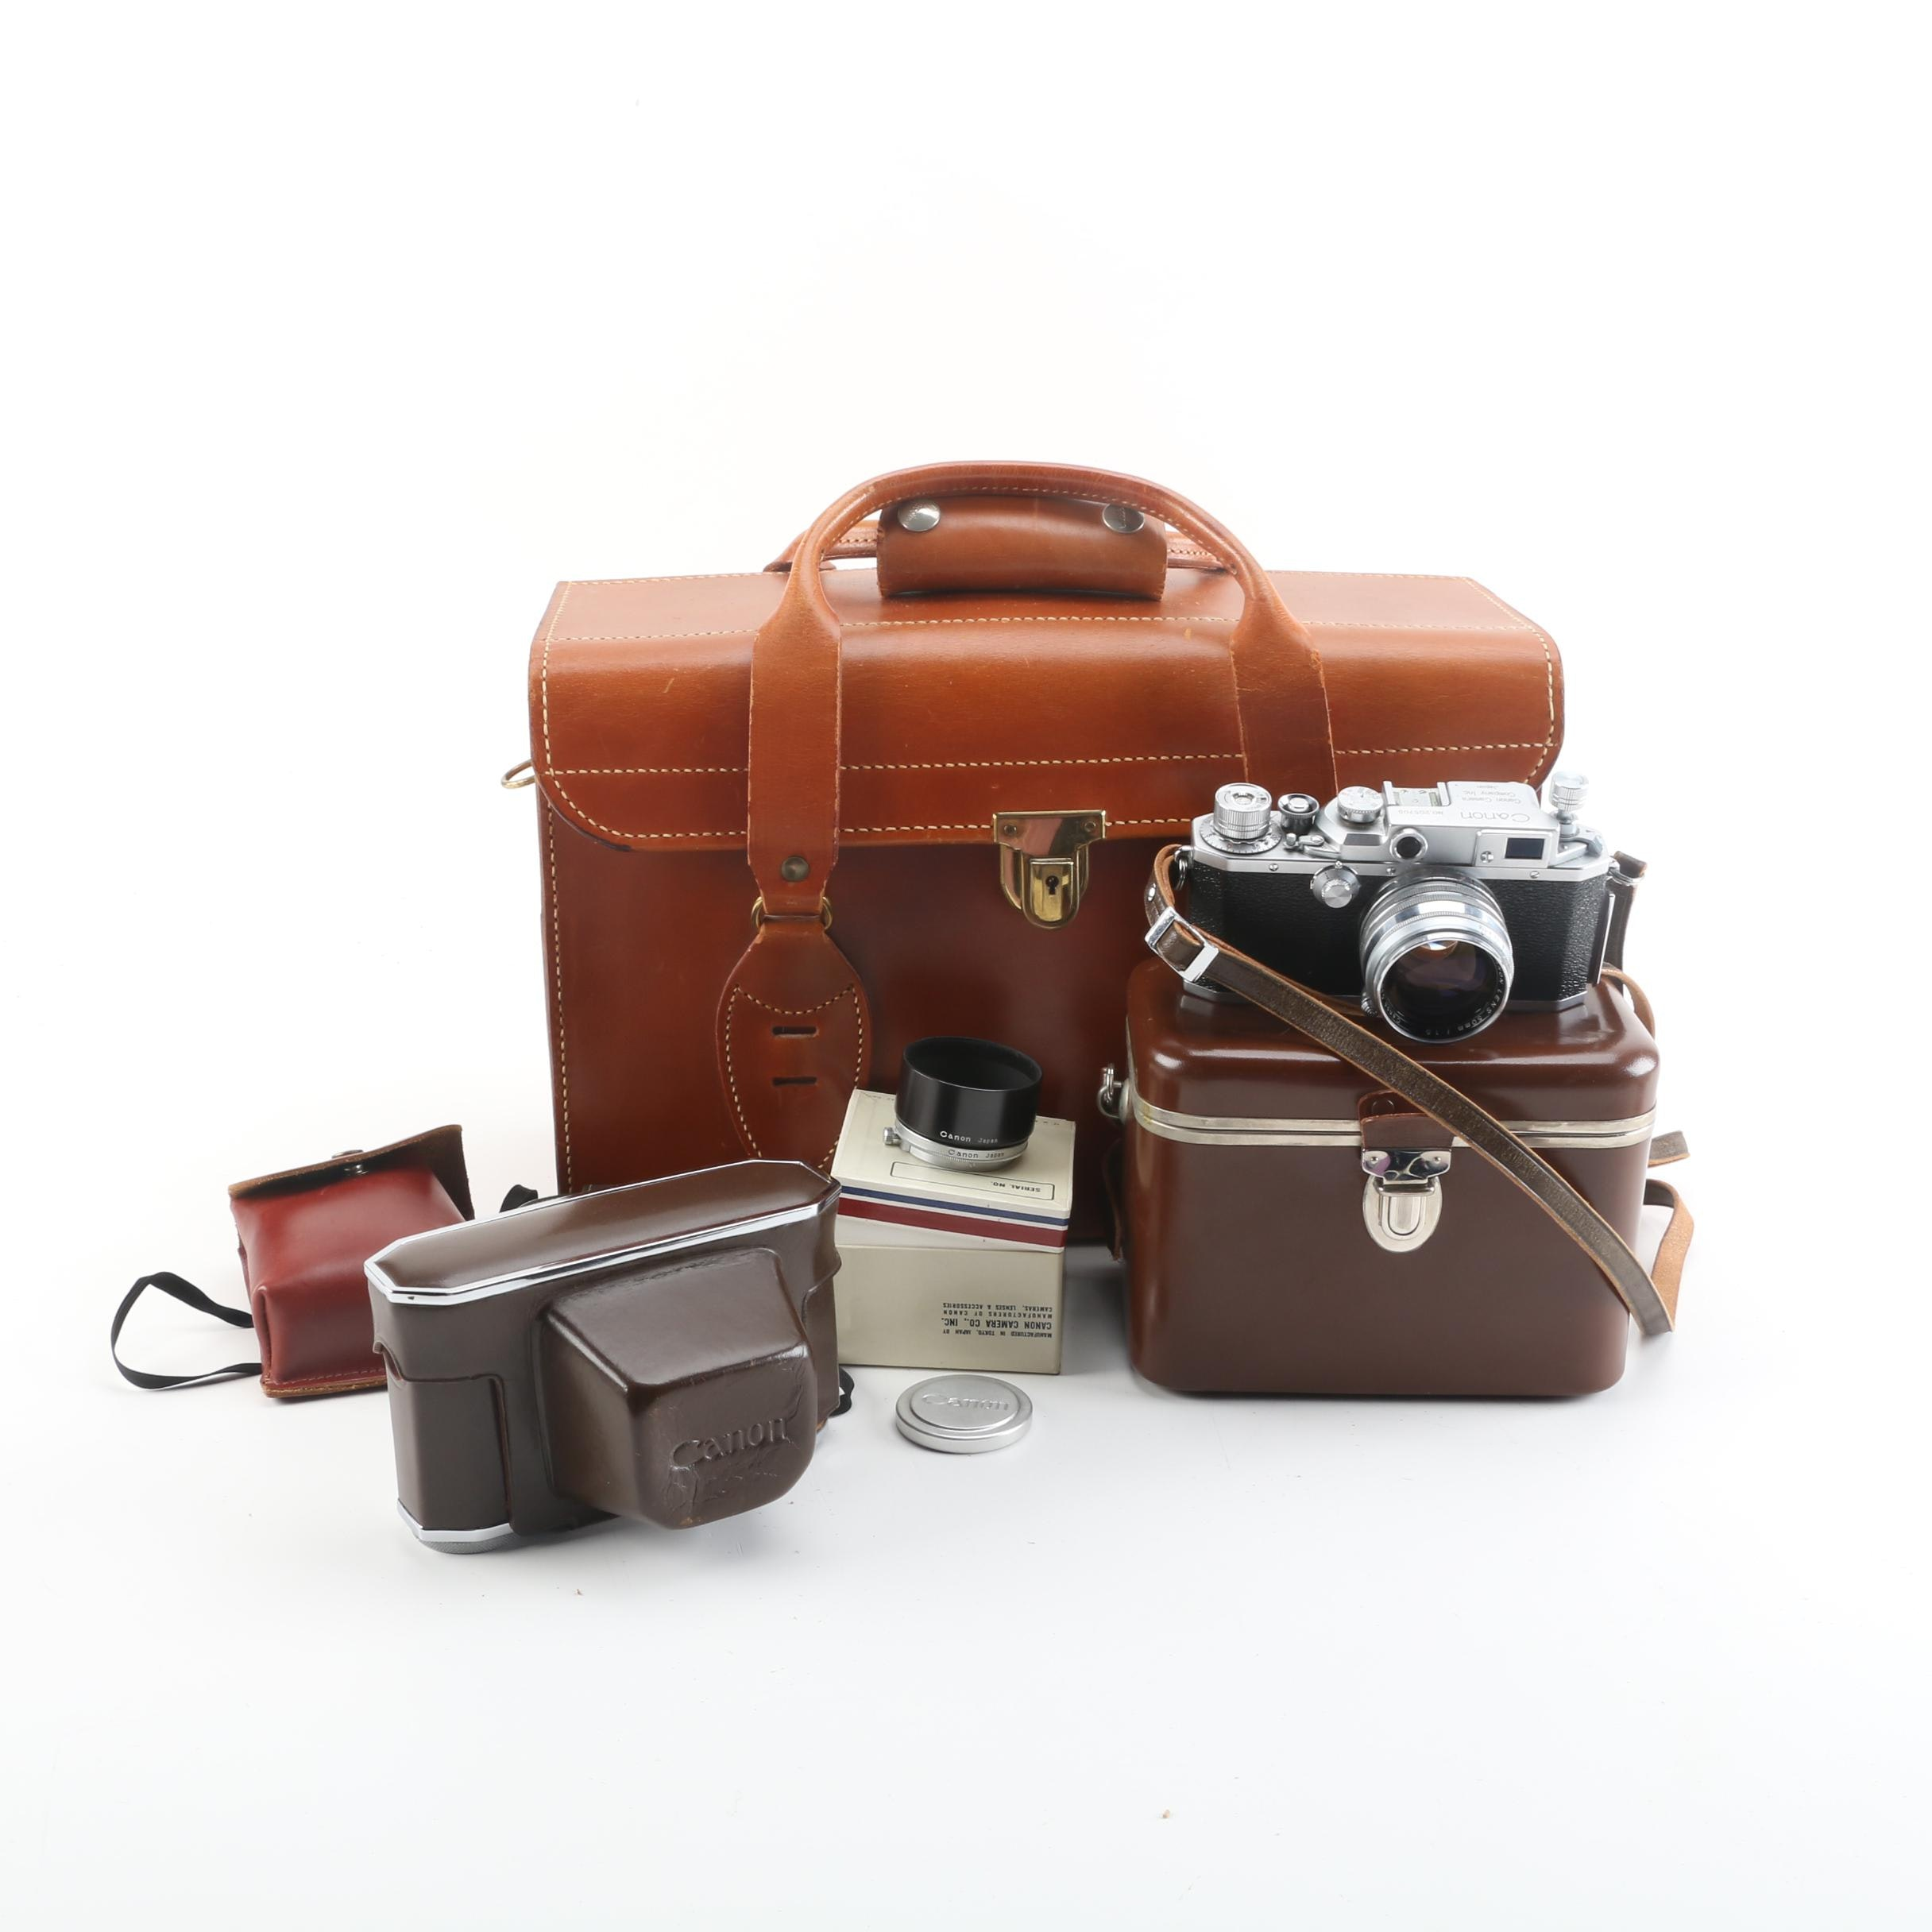 Vintage Canon Still Camera, Leather Cases, and Accessories